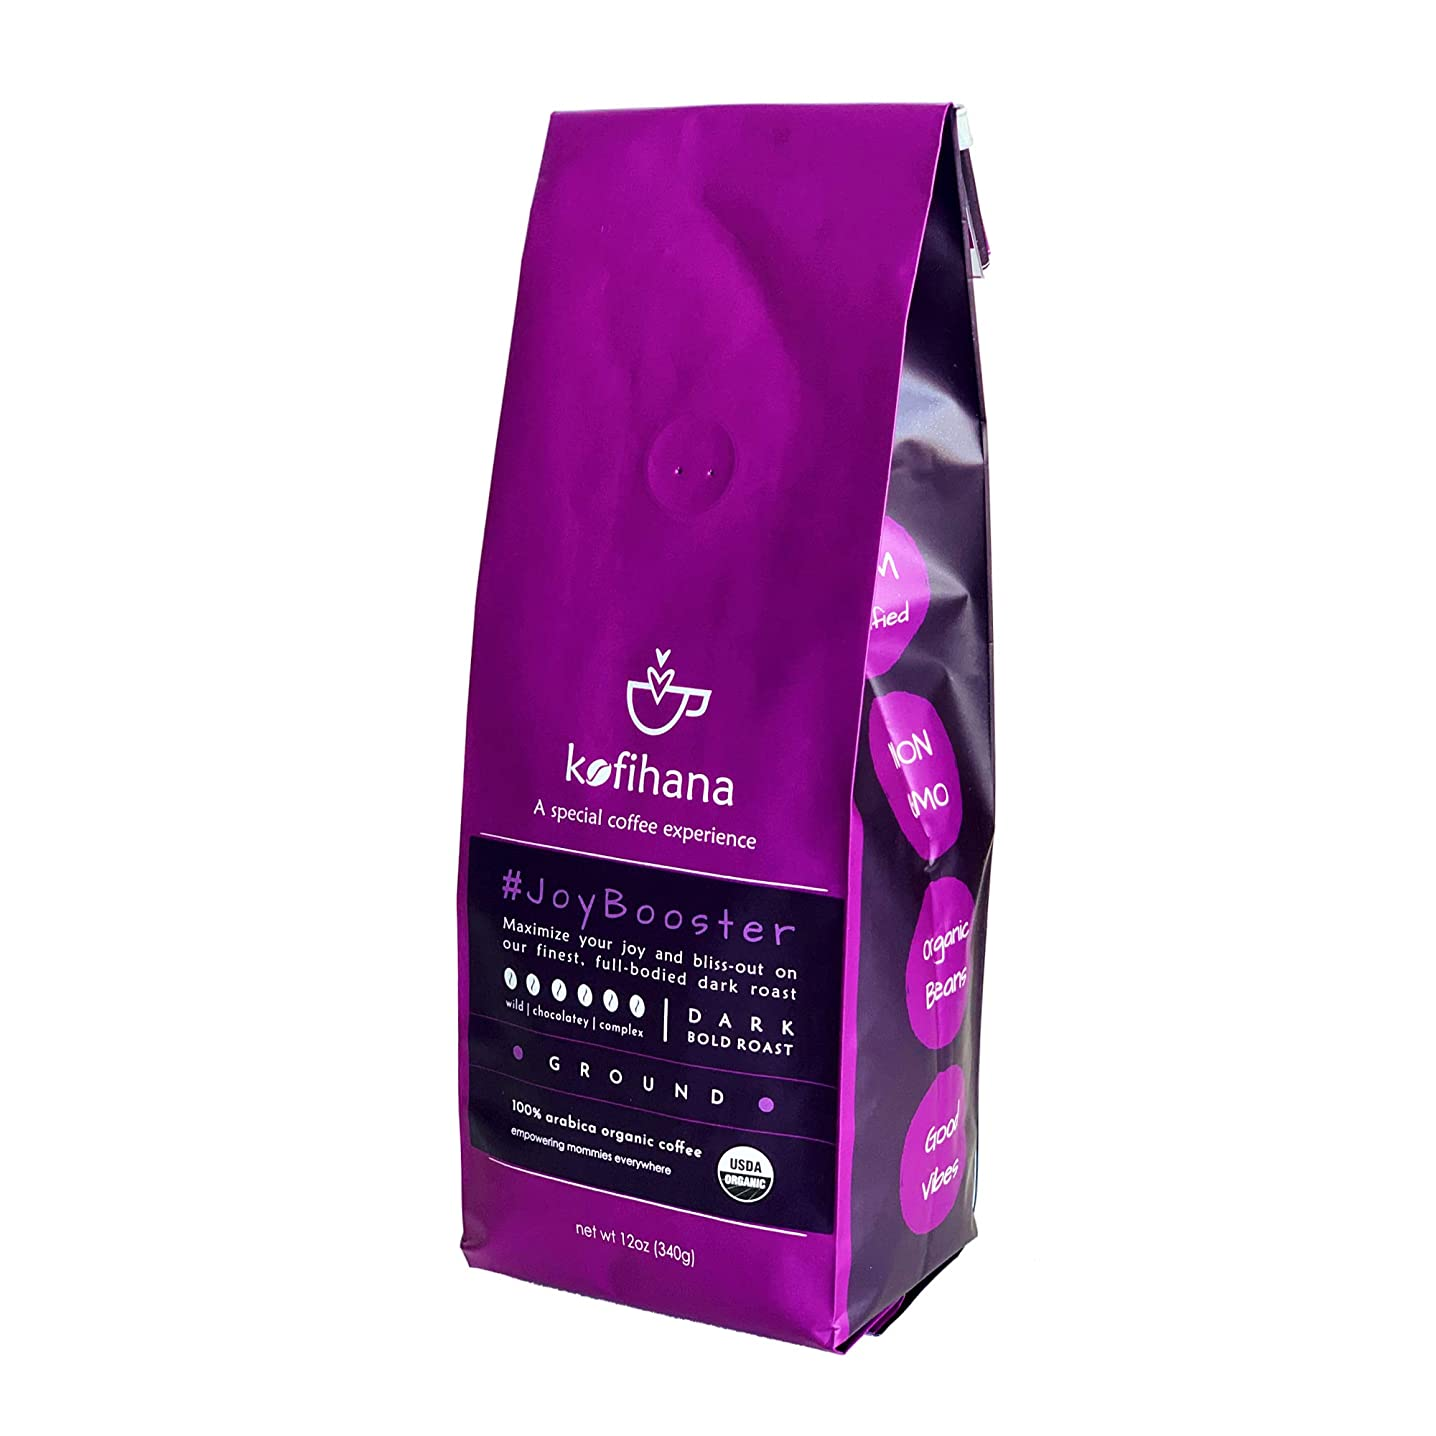 Kofihana #JoyBooster Organic Specialty Coffee - Dark Roast 100% Arabica Organic Coffee - USDA Certified - Hondura Single Origin - 12 oz. GROUND